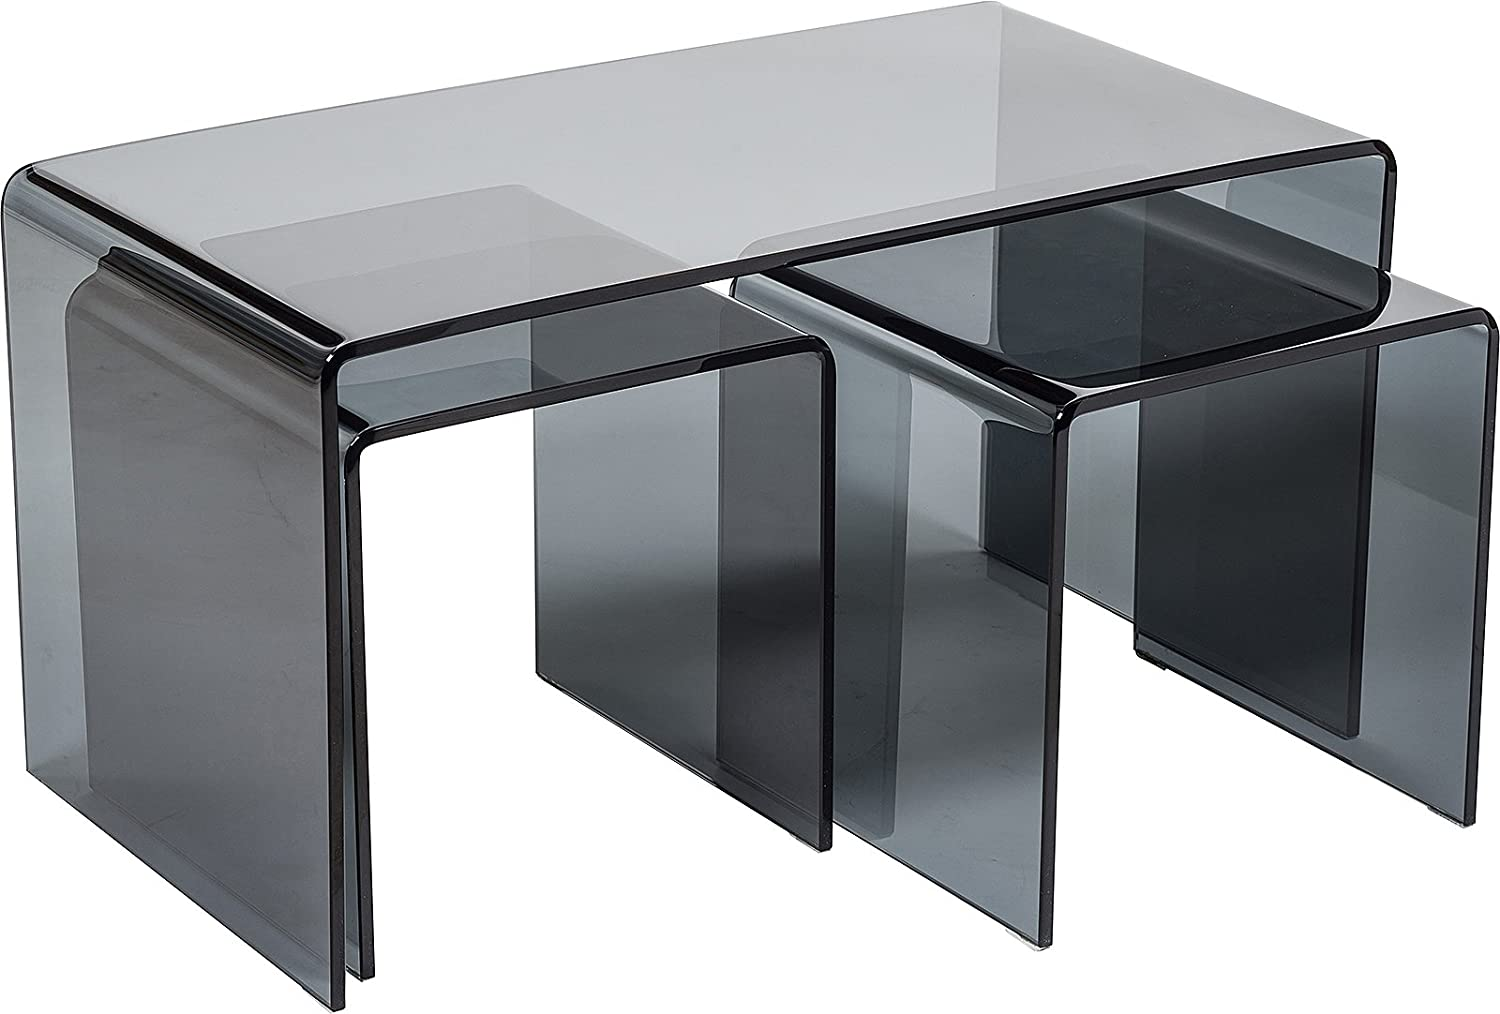 Modena Stylish Set Of 3 Curved Black Glass Coffee Tables Modern 12mm Bent Glass Living Room Table Side Table Set Minimalist Dark Tempered Glass Nest Of Tables 110 X [ 1014 x 1500 Pixel ]